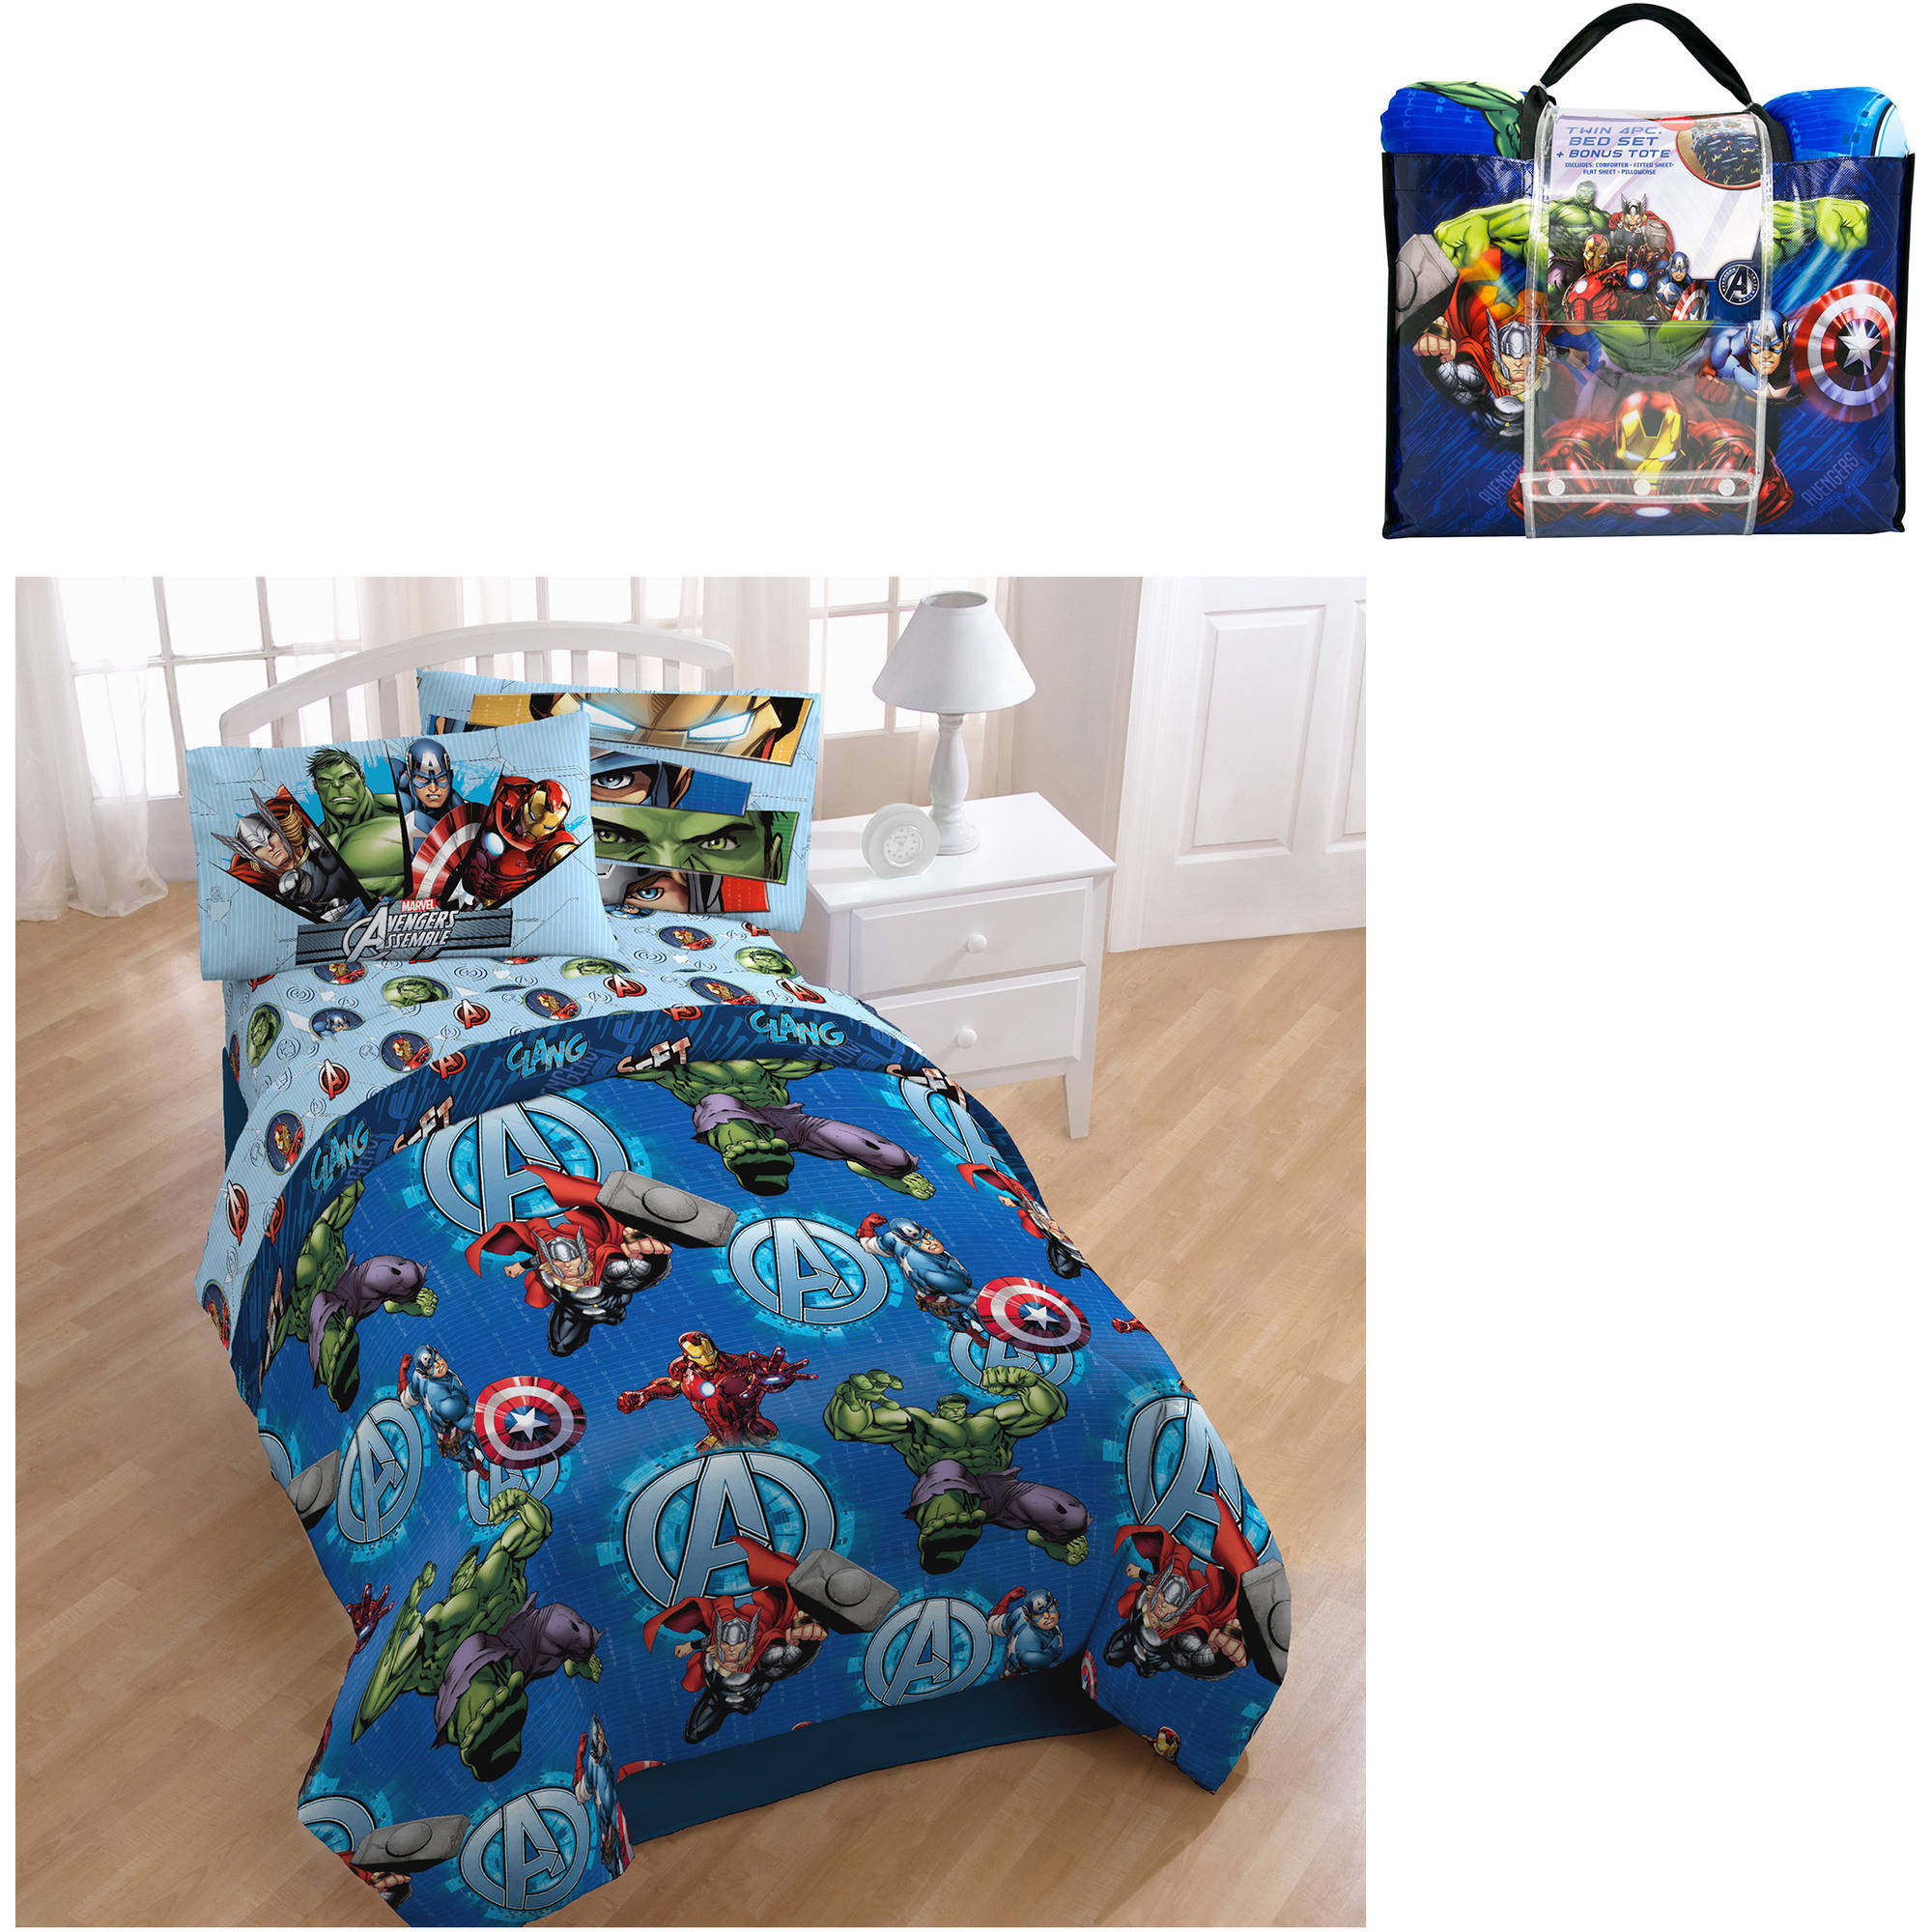 Avengers bedding set twin - Marvel Avengers Assemble Smash 4 Piece Bedding Set With Bonus Tote